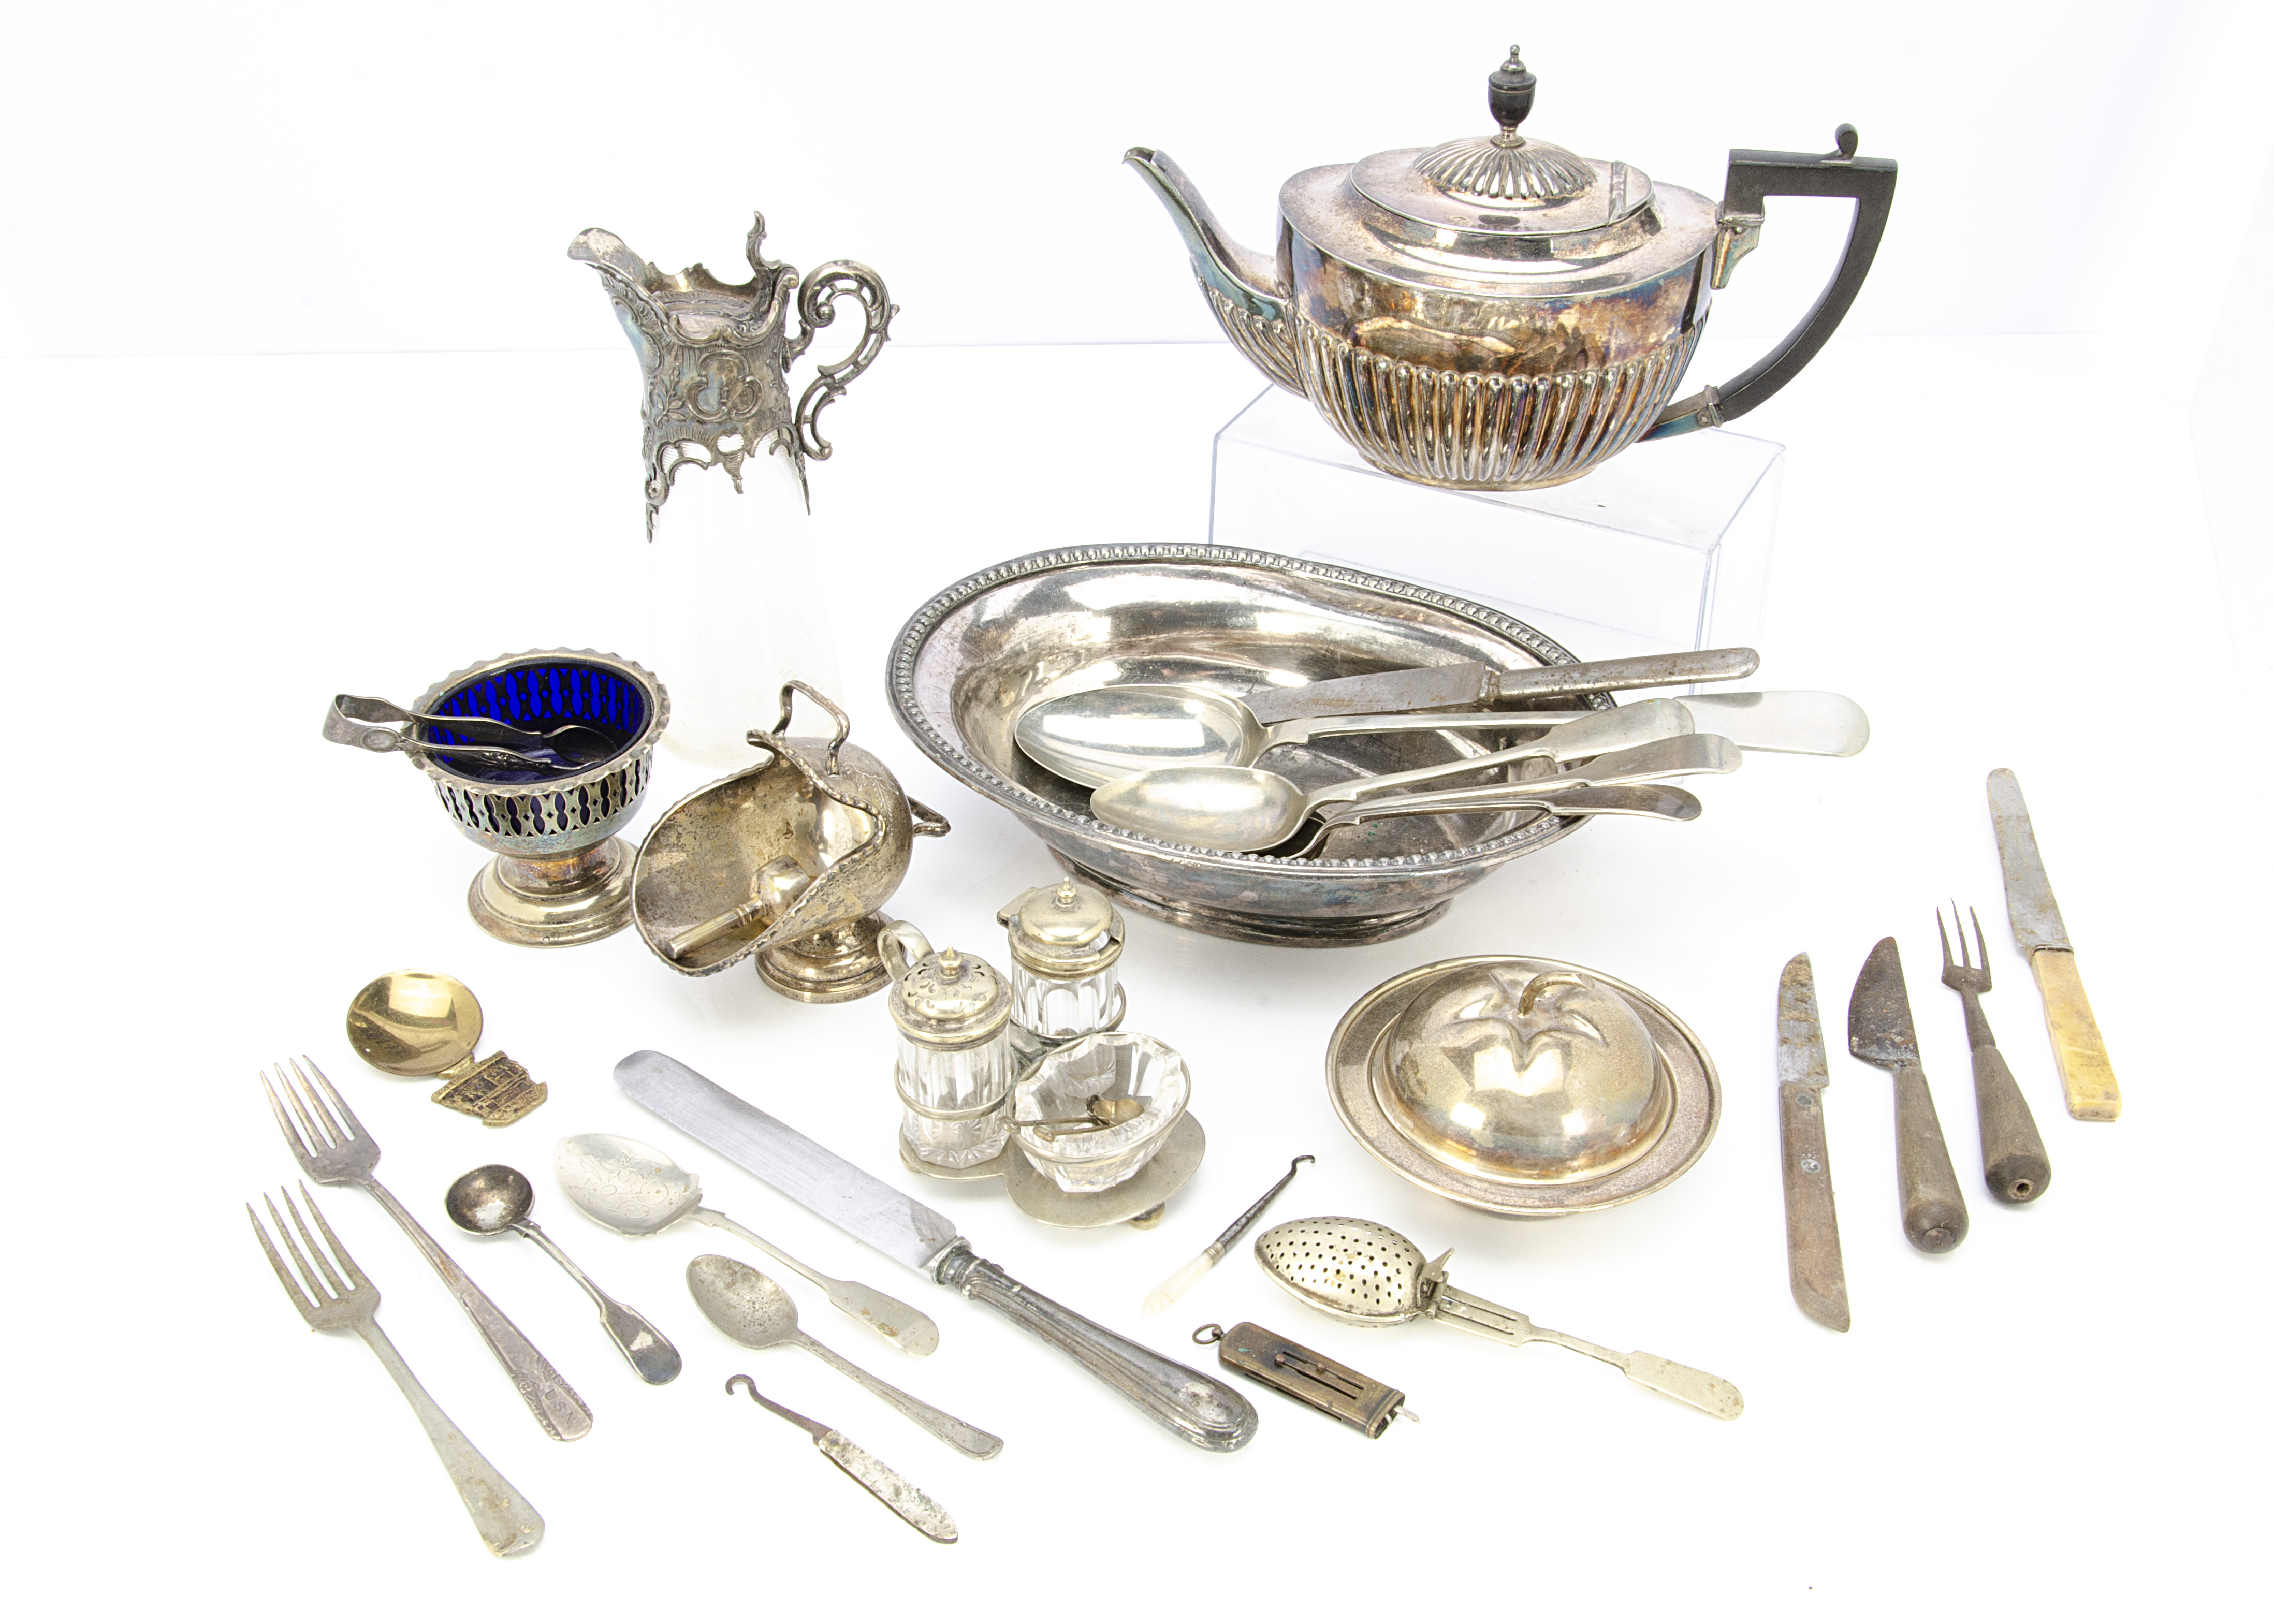 A collection of silver plated items, including a glass and silver plated claret jug, cruet set and